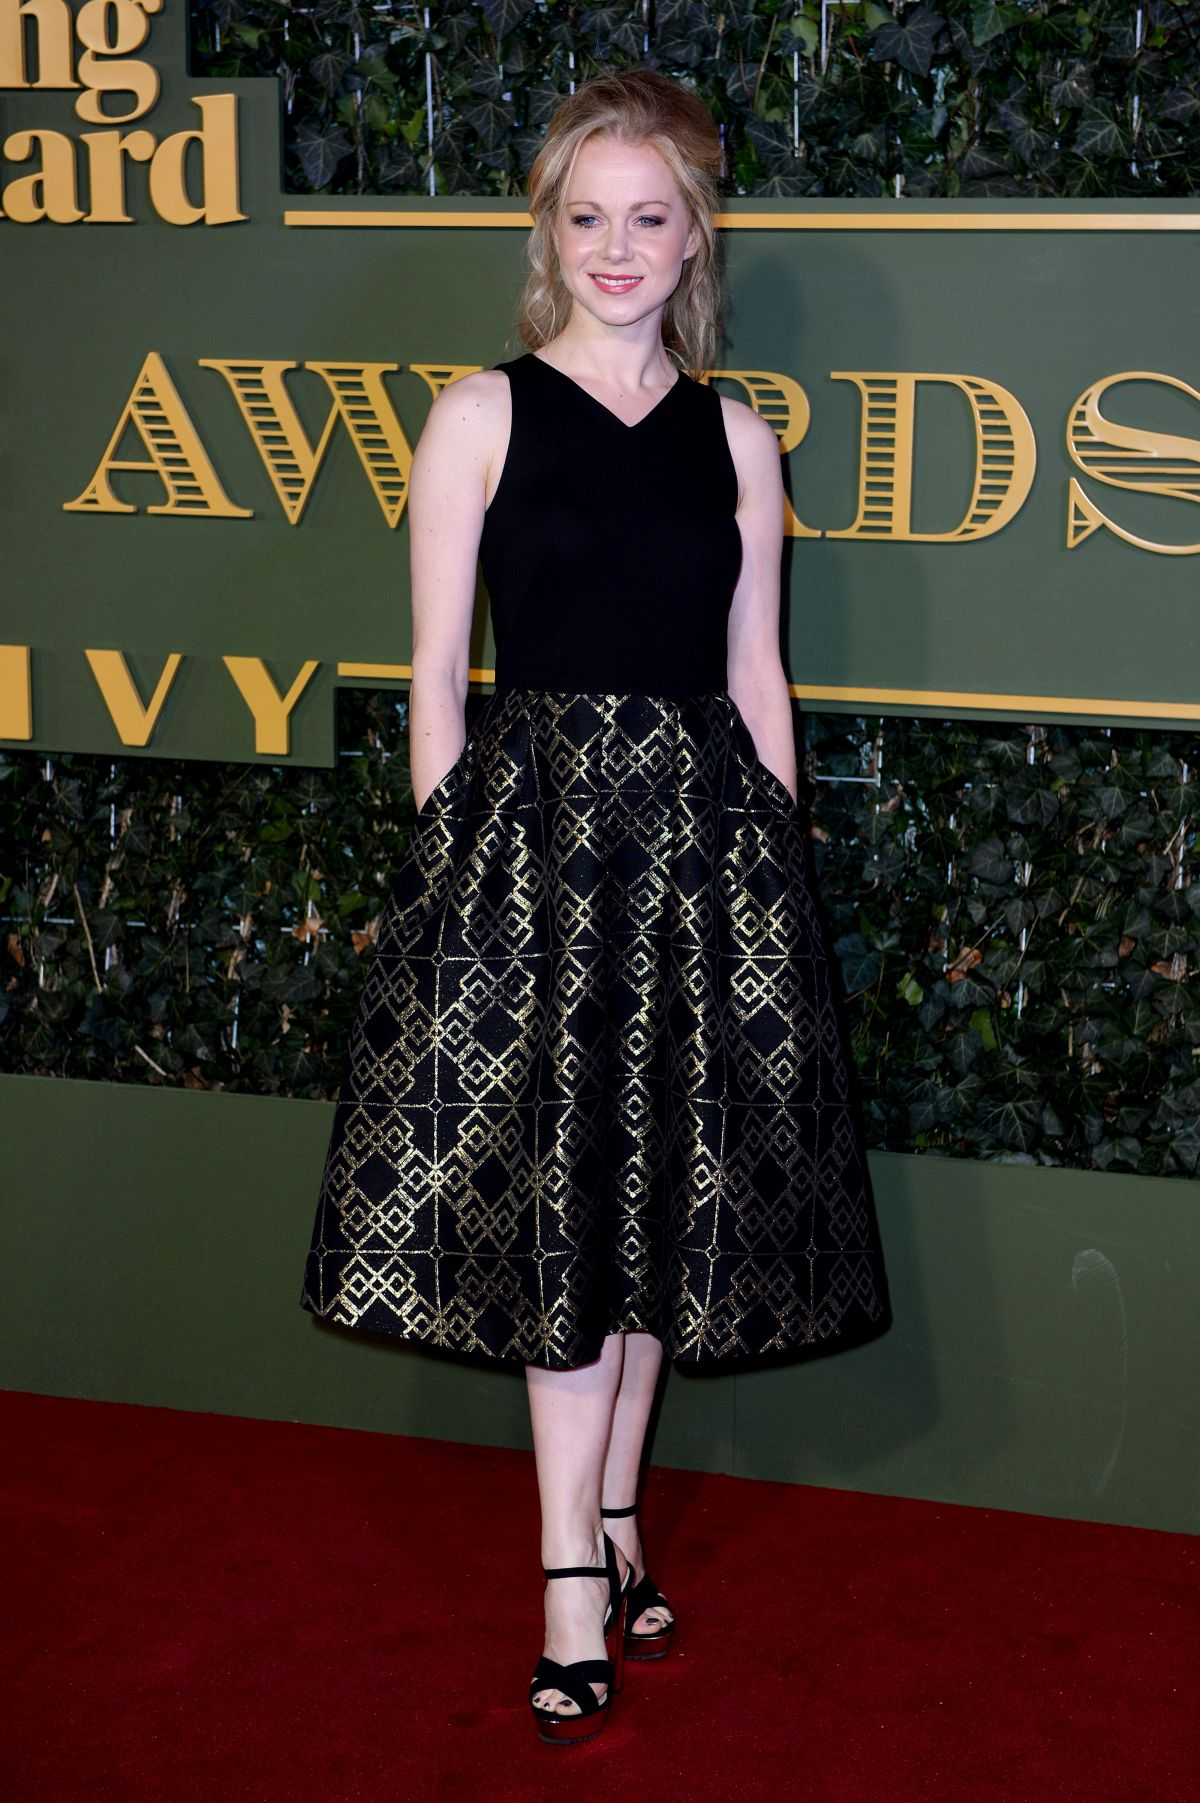 AMY LENNOX at Evening Standard Theatre Awards in London 11/22/2015